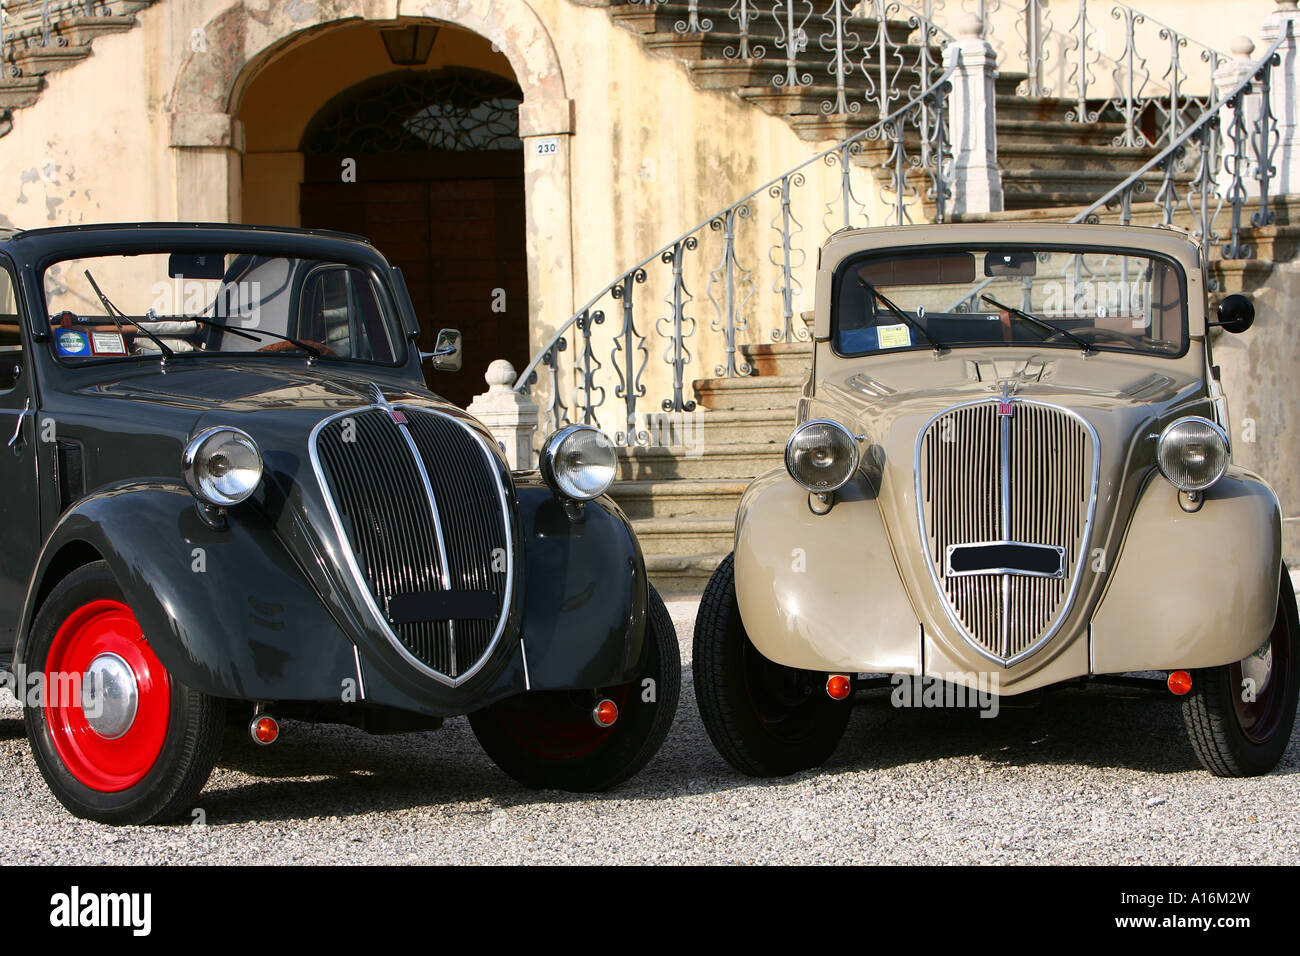 fiat topolino b stock photo: 10161120 - alamy